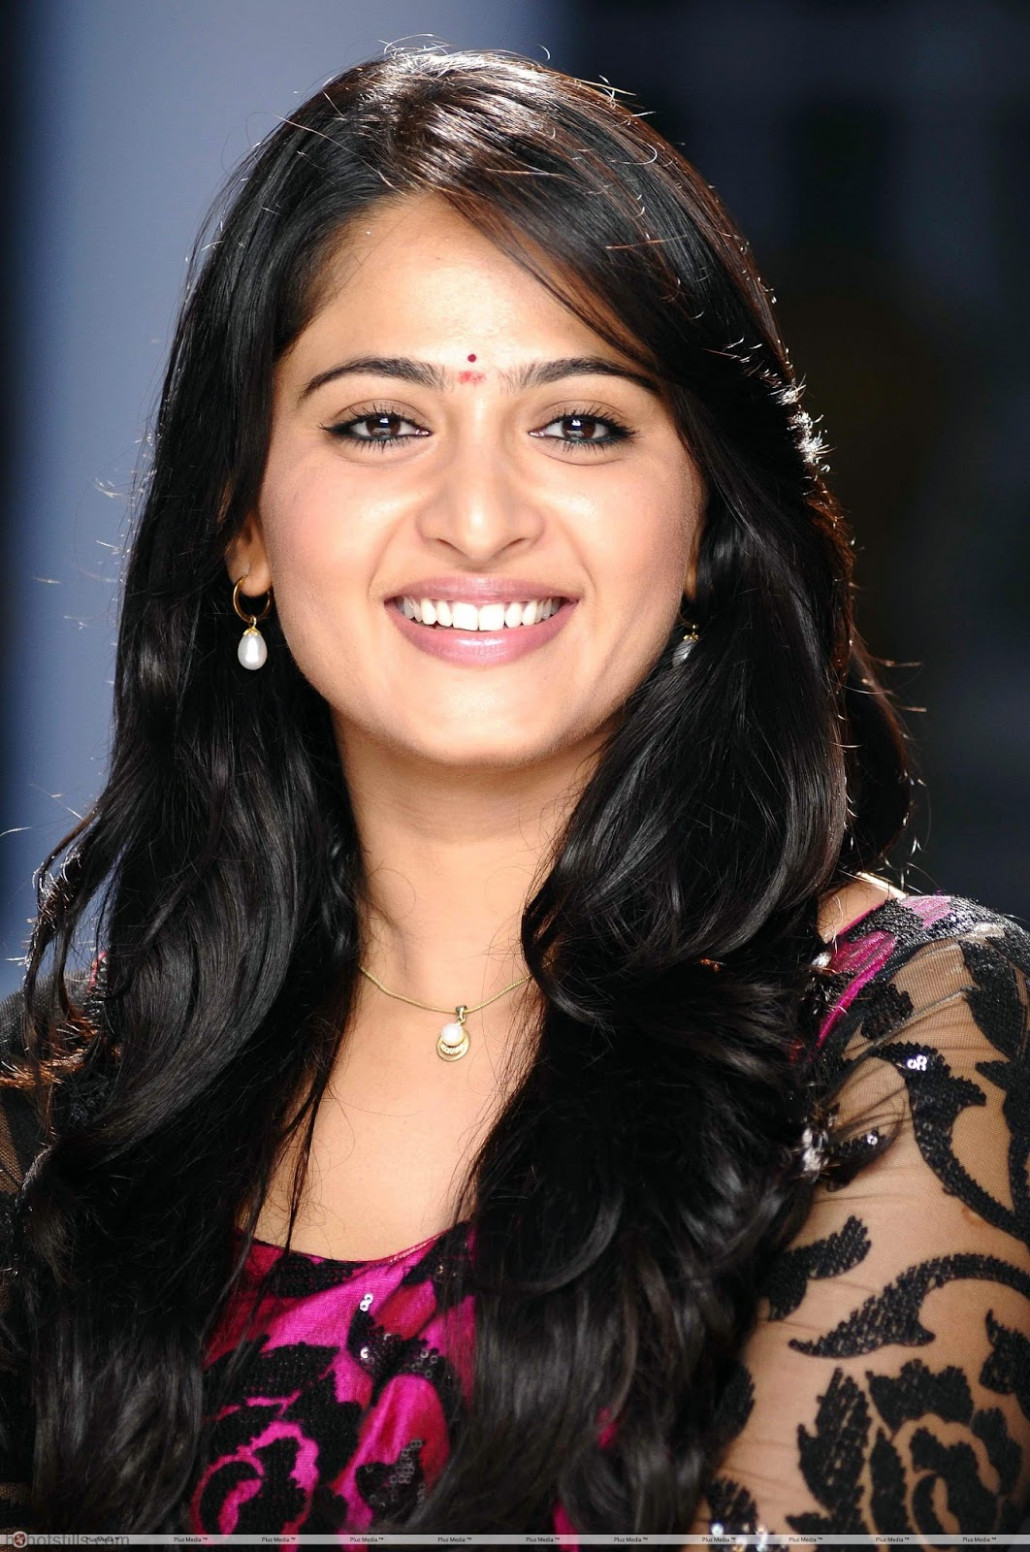 Anushka Shetty Cute High Resolution(HD) Quality 1200*1600 ...